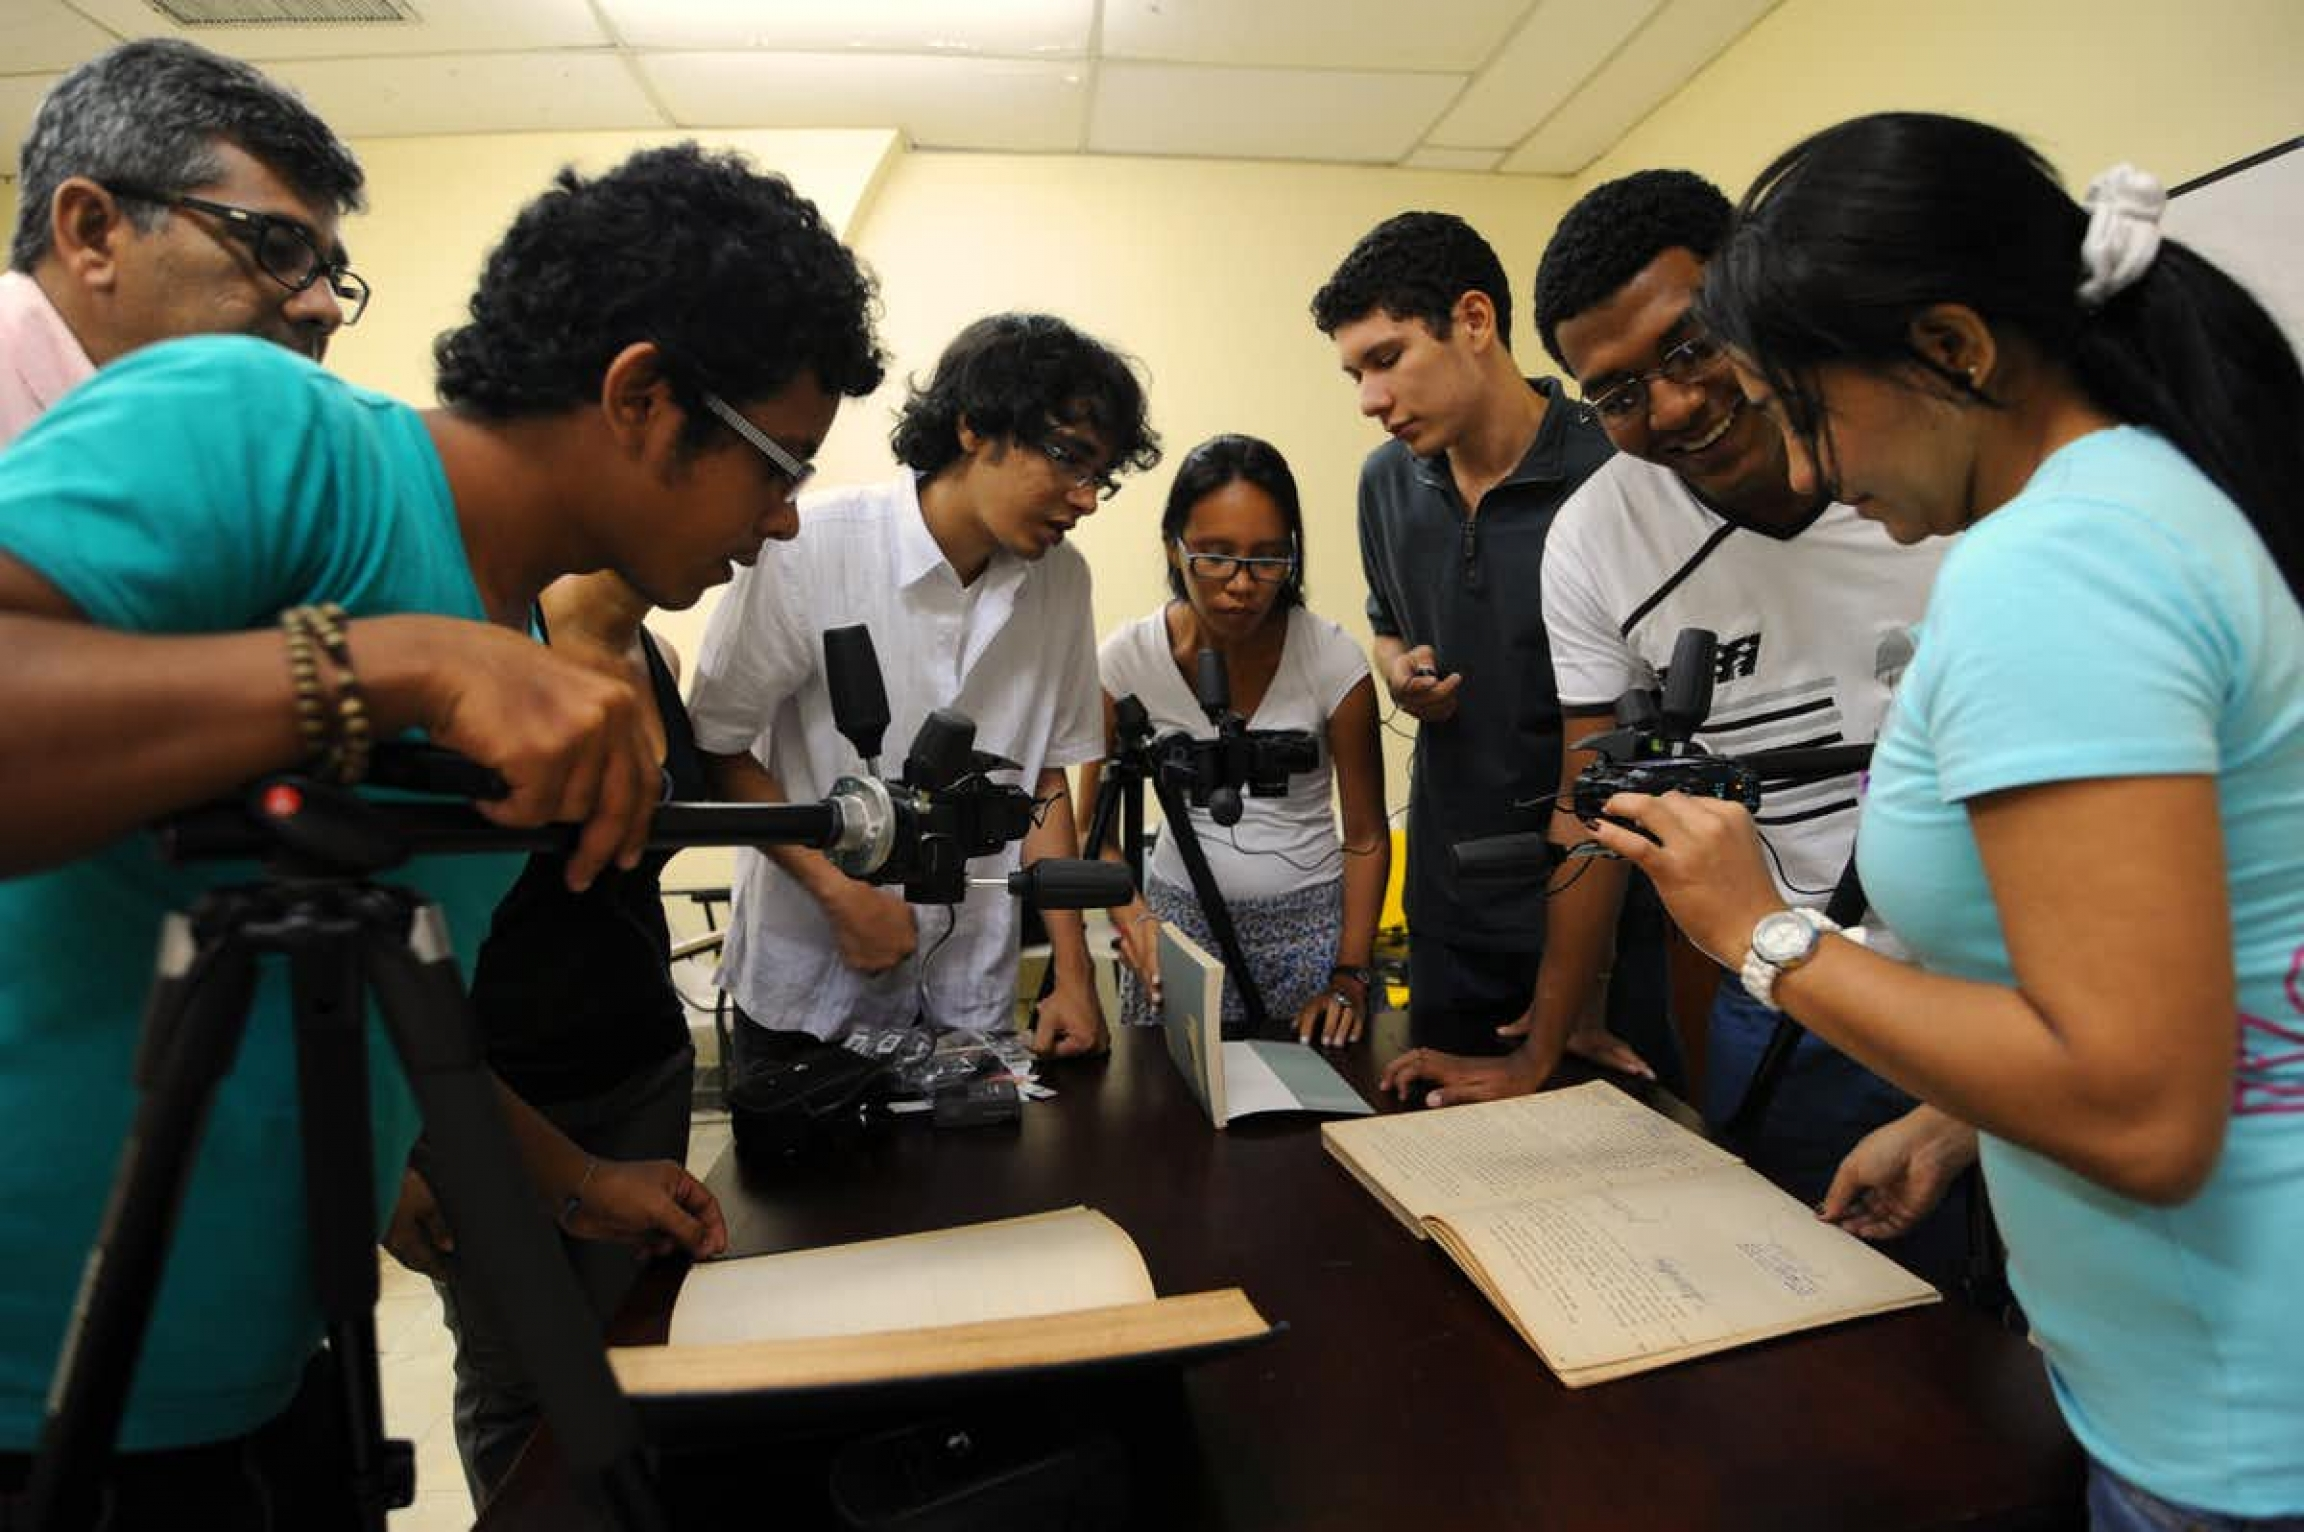 A lot of people get involved, both teaching and learning how to properly photograph documents.